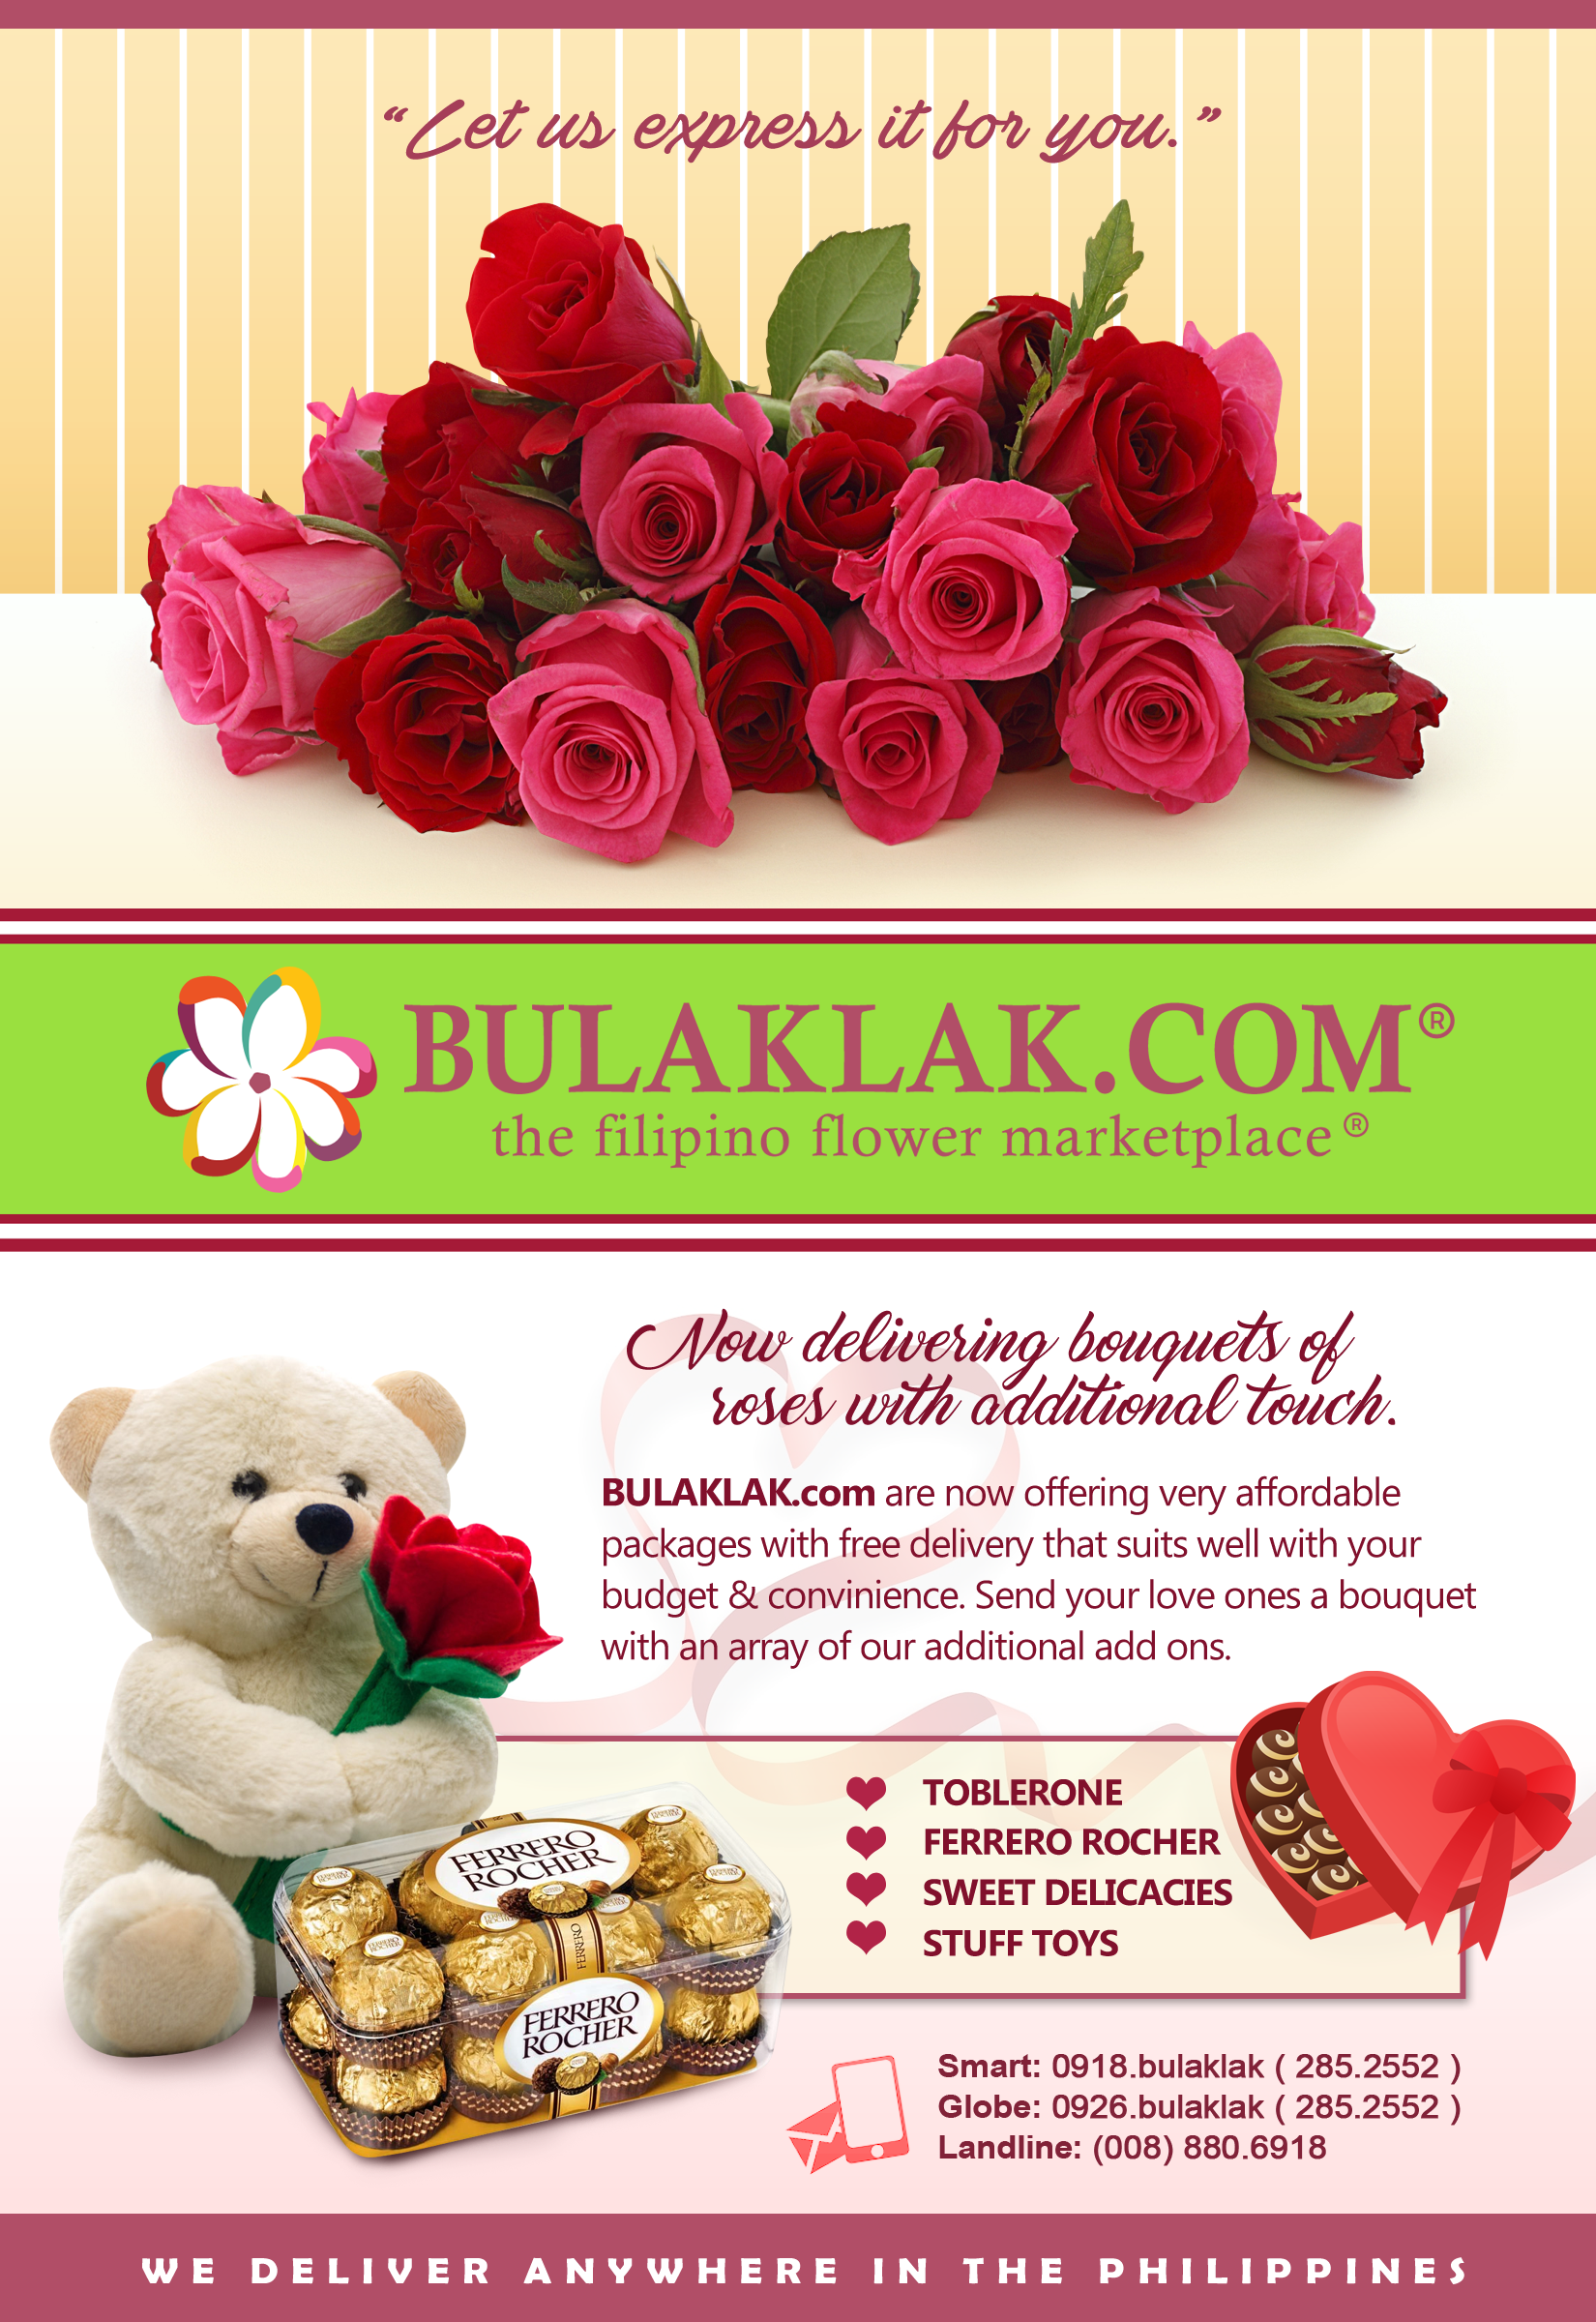 Bulaklak affordable flower arrangements as low as p300 in a com affordable flower arrangements as low as p300 in a single store with free delivery dhlflorist Image collections